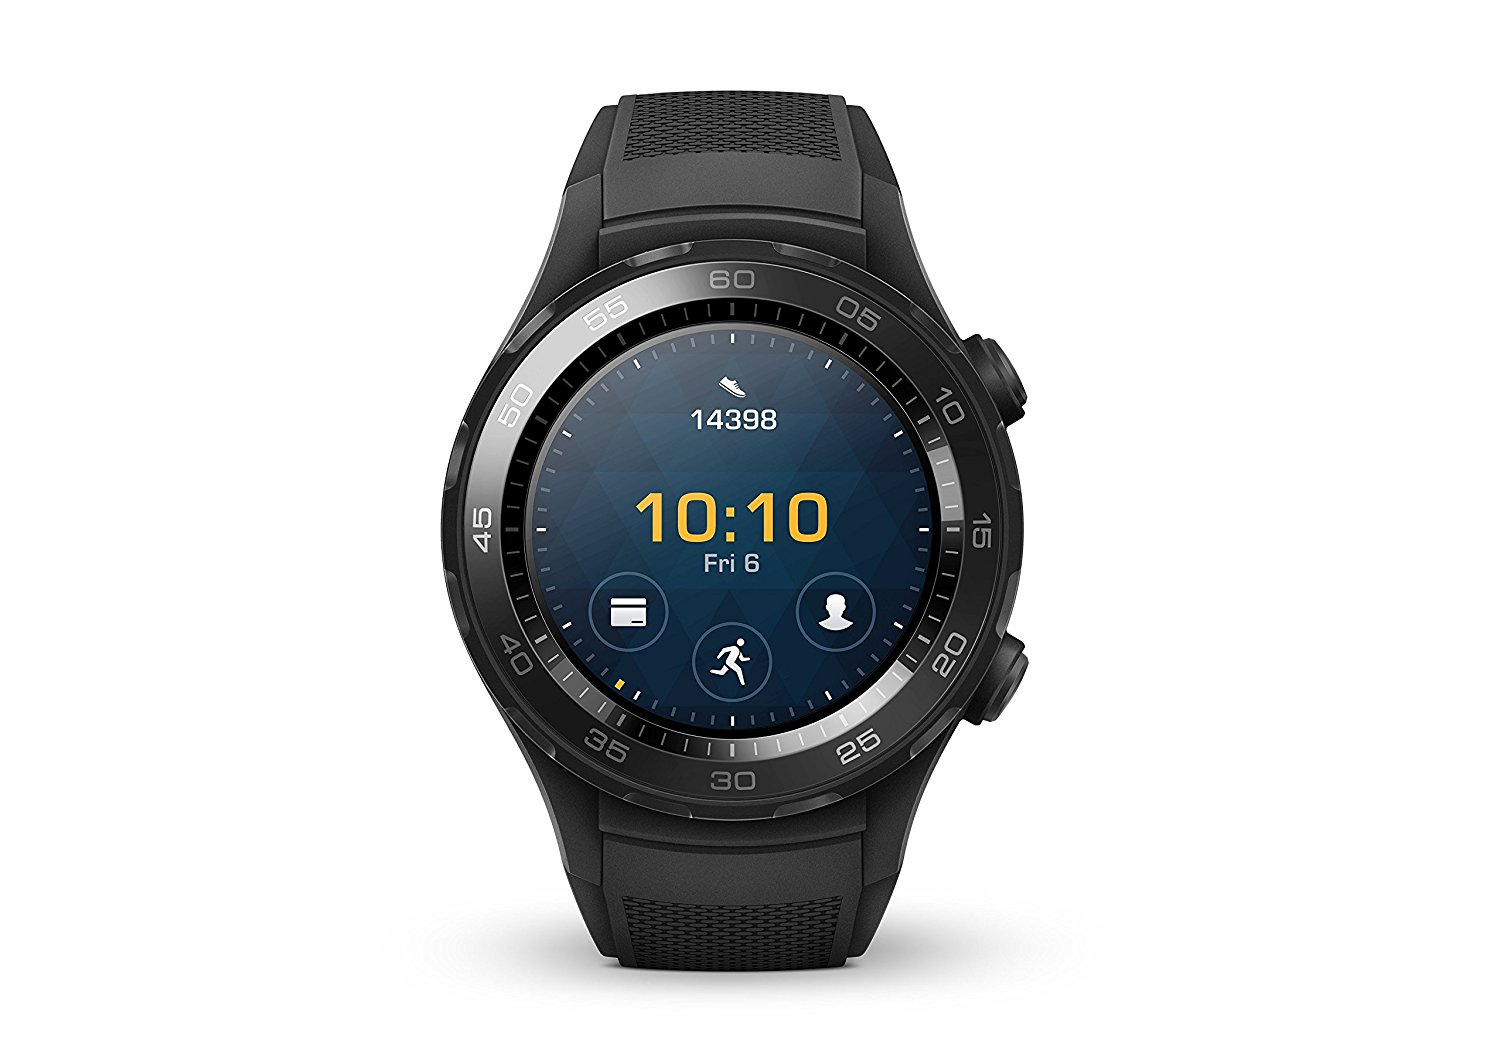 Huawei Watch 2 Smartwatch, 4 GB ROM, Android Wear, Bluetooth, Wifi